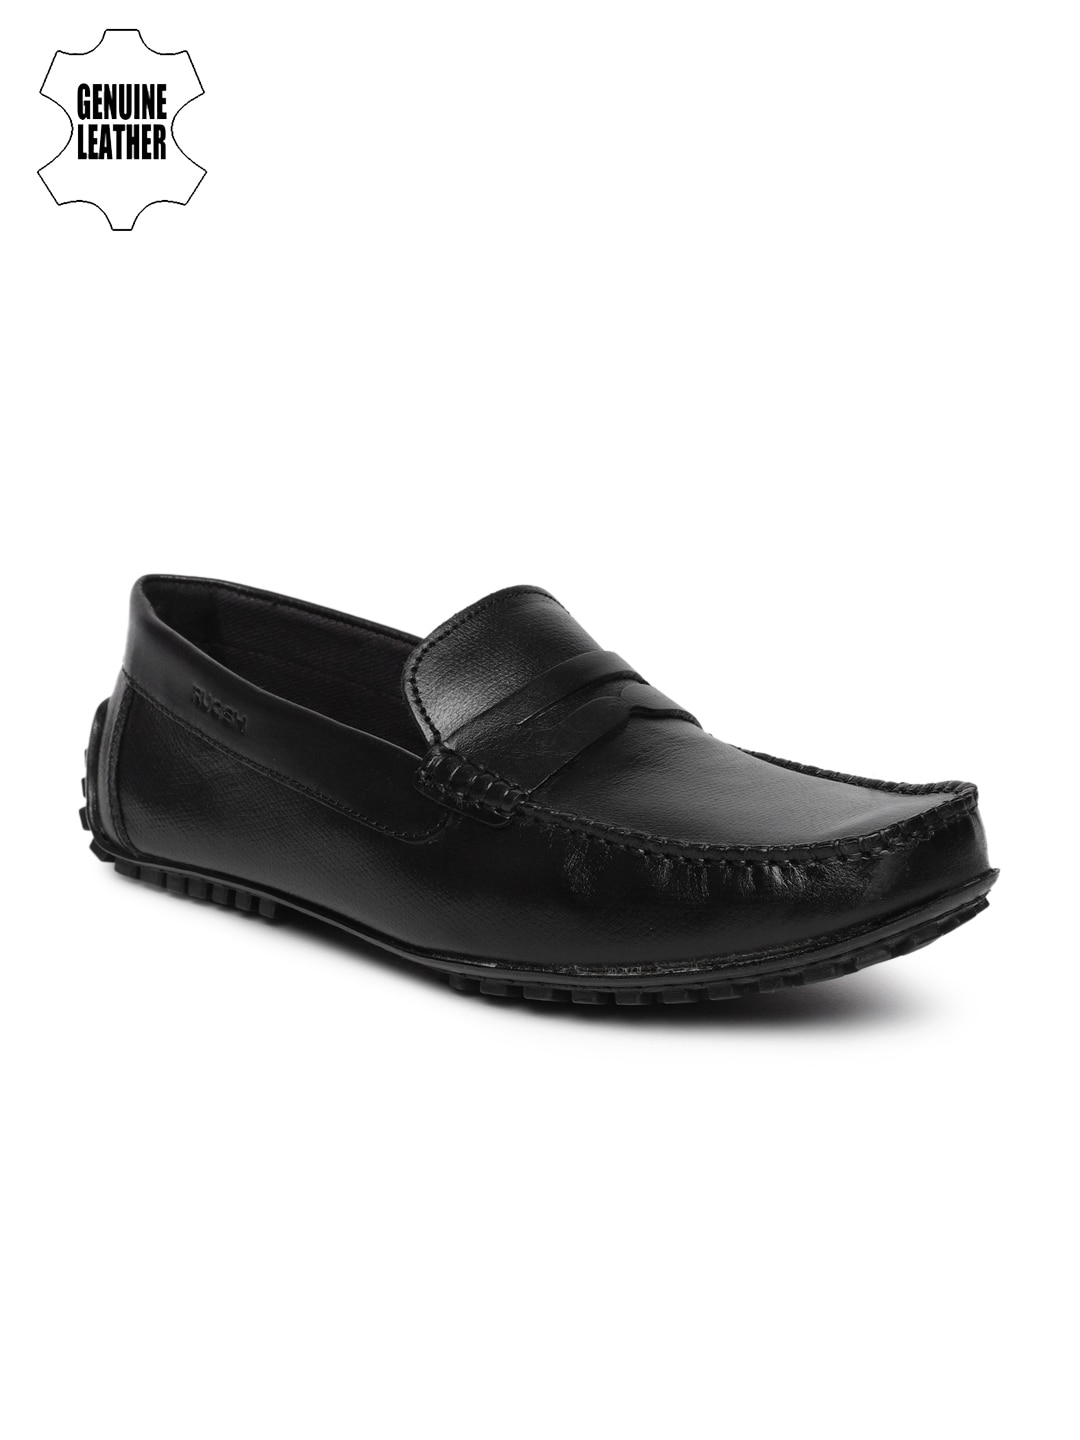 a0468ac19c Ruosh Shoes - Buy Ruosh Shoes online in India